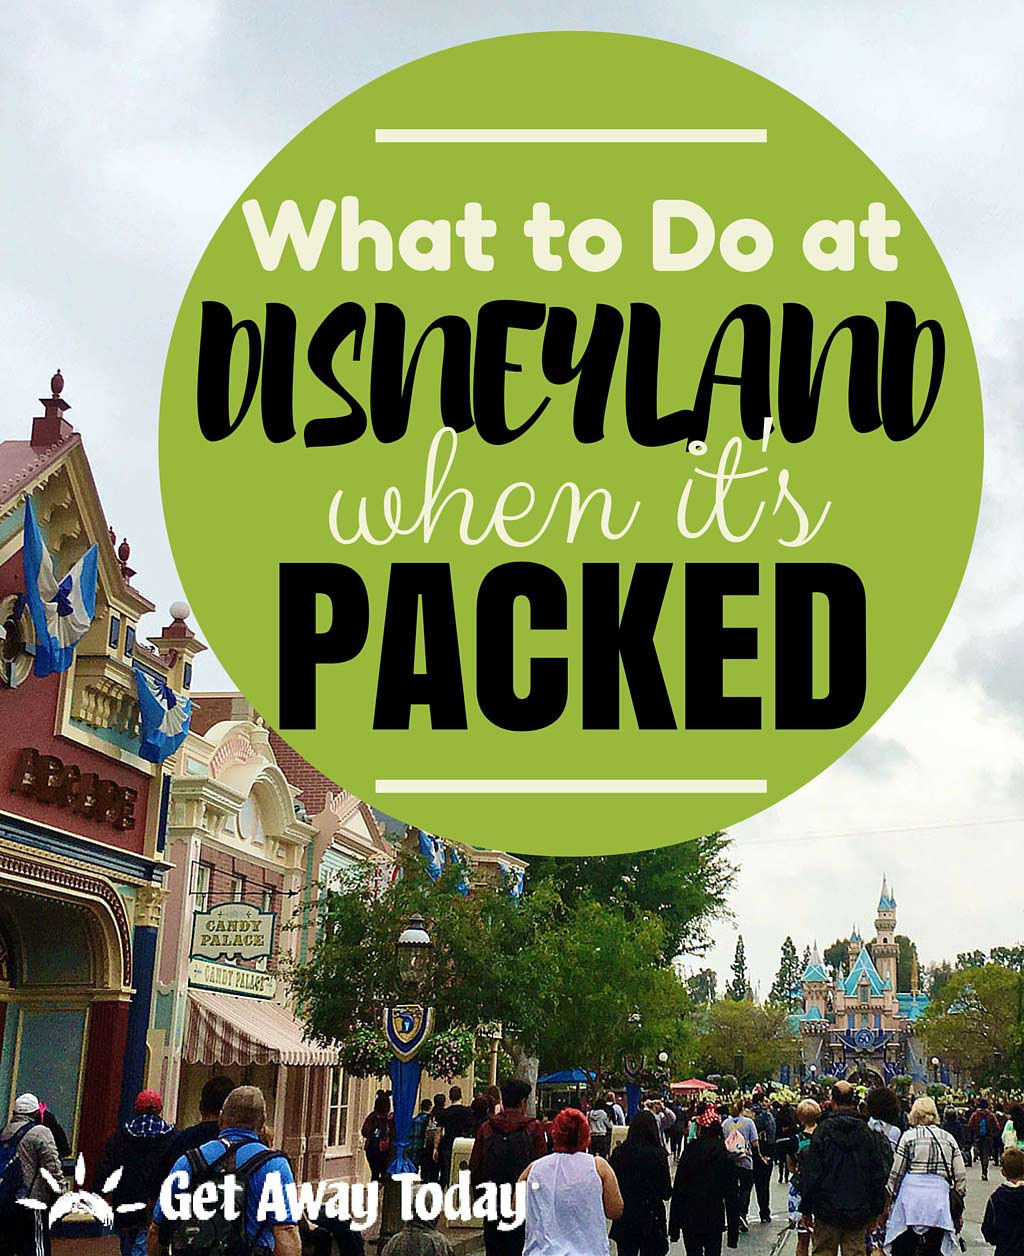 What to do at Disneyland when it's Packed